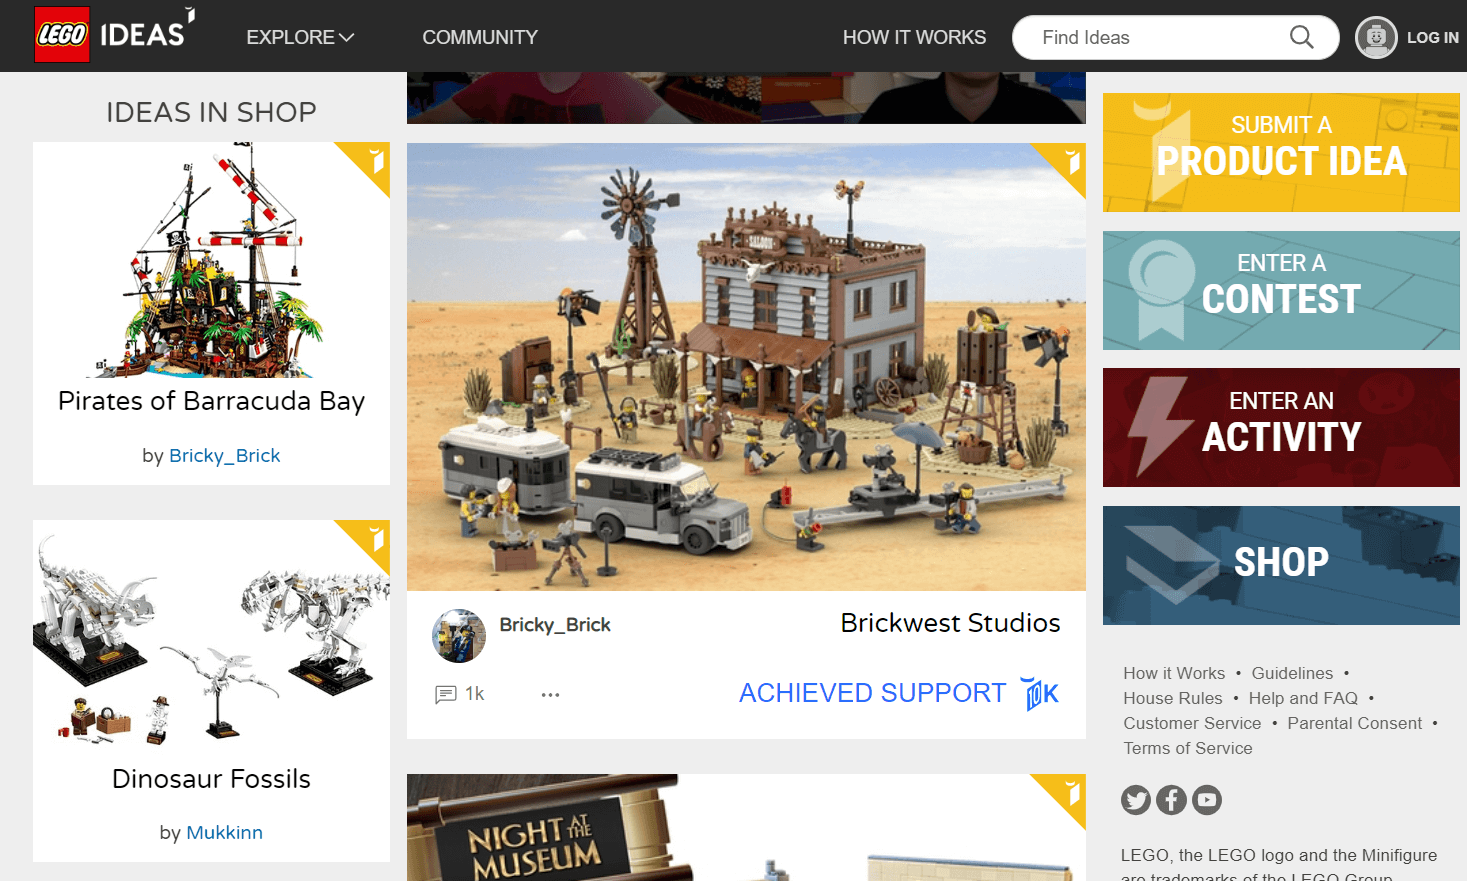 lego ideas ejemplo de crowdsourcing